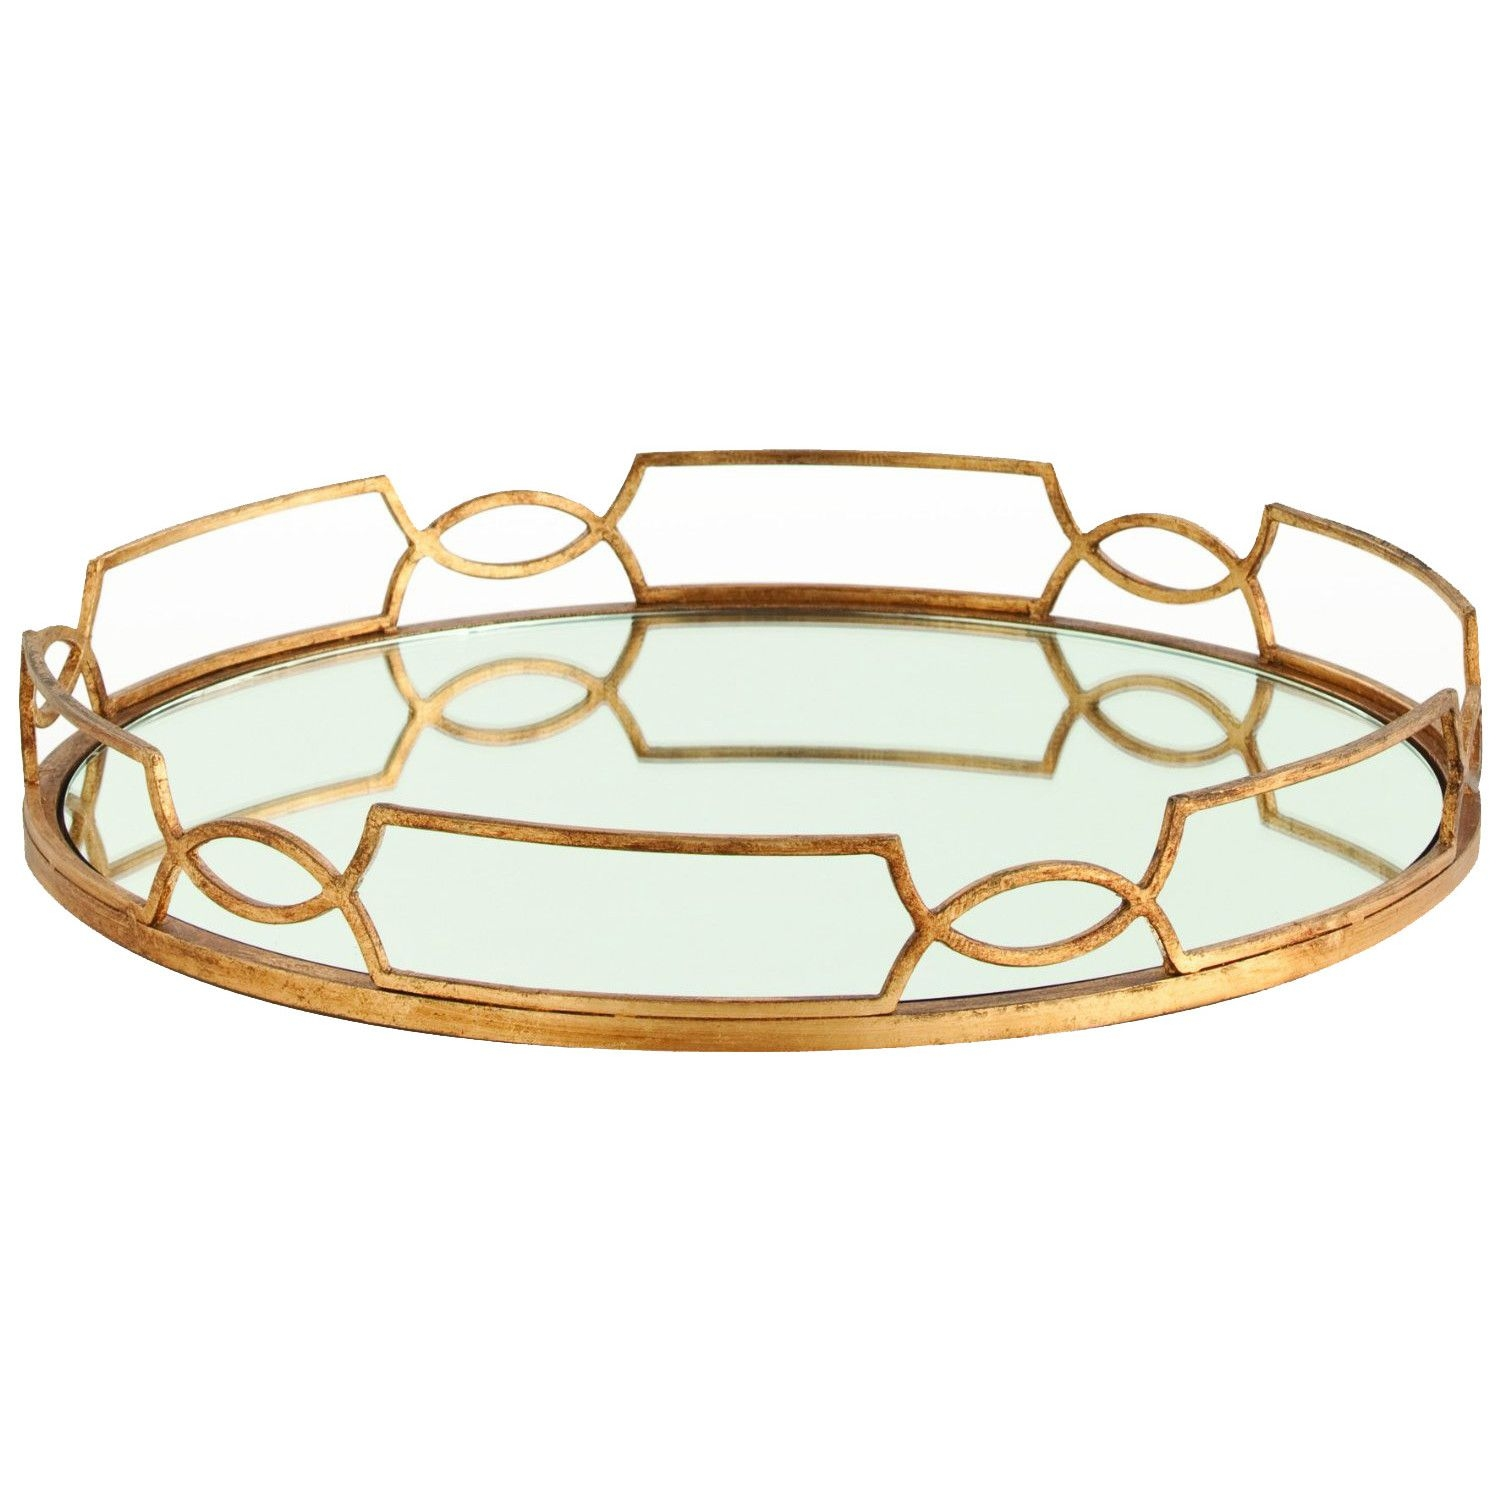 Arteriors home cinchwaist gold iron with mirror tray